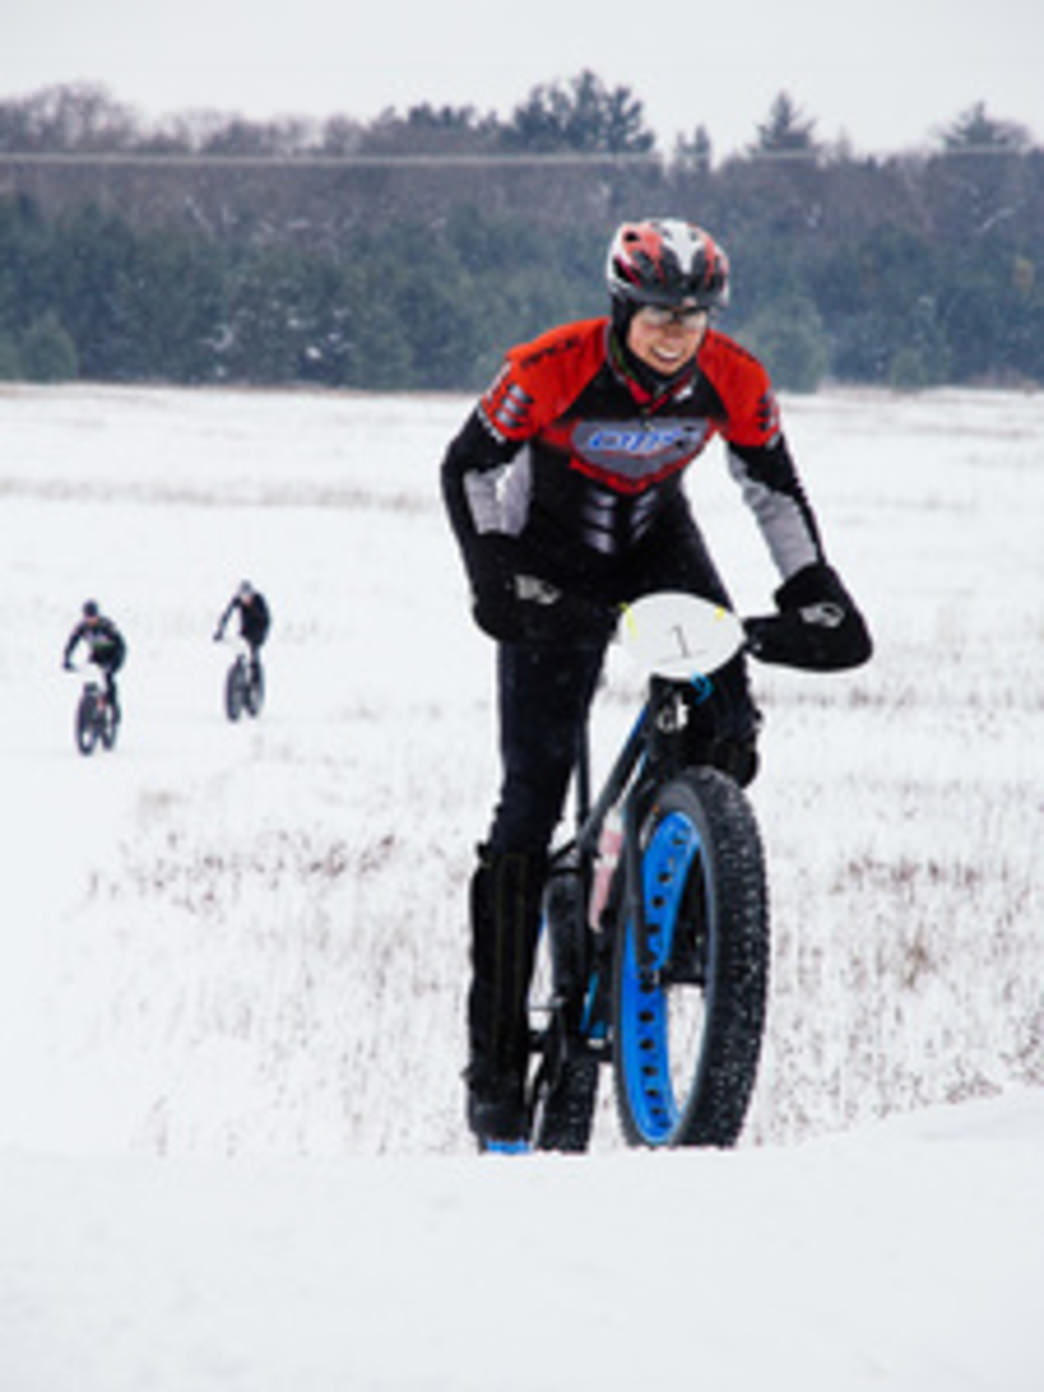 Fat bikes are more fun in snow, so keep your fingers crossed we get some soon!